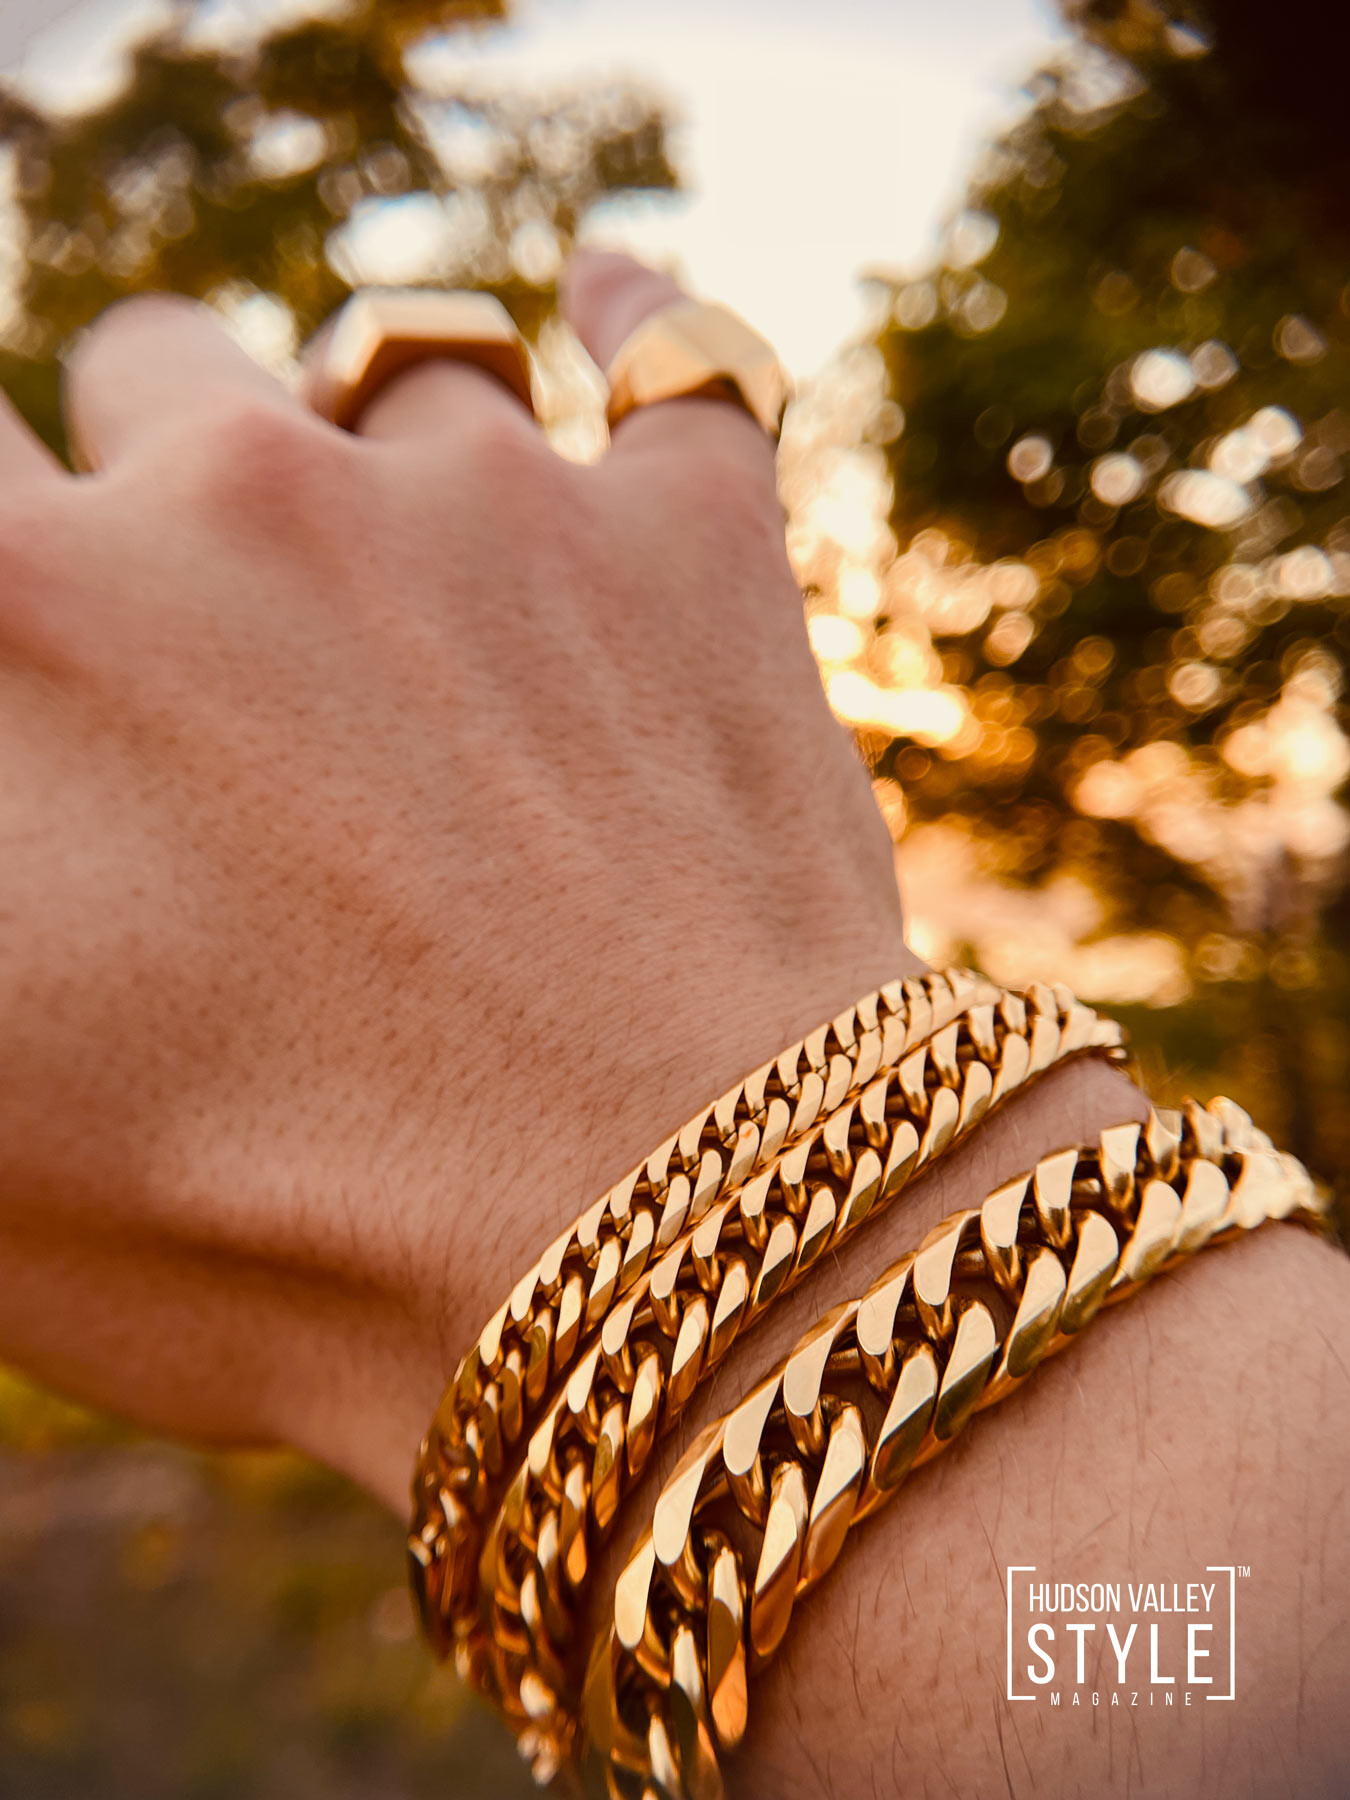 2021 Mens Fashion Trend: Bracelets to Elevate Style and Boost Confidence